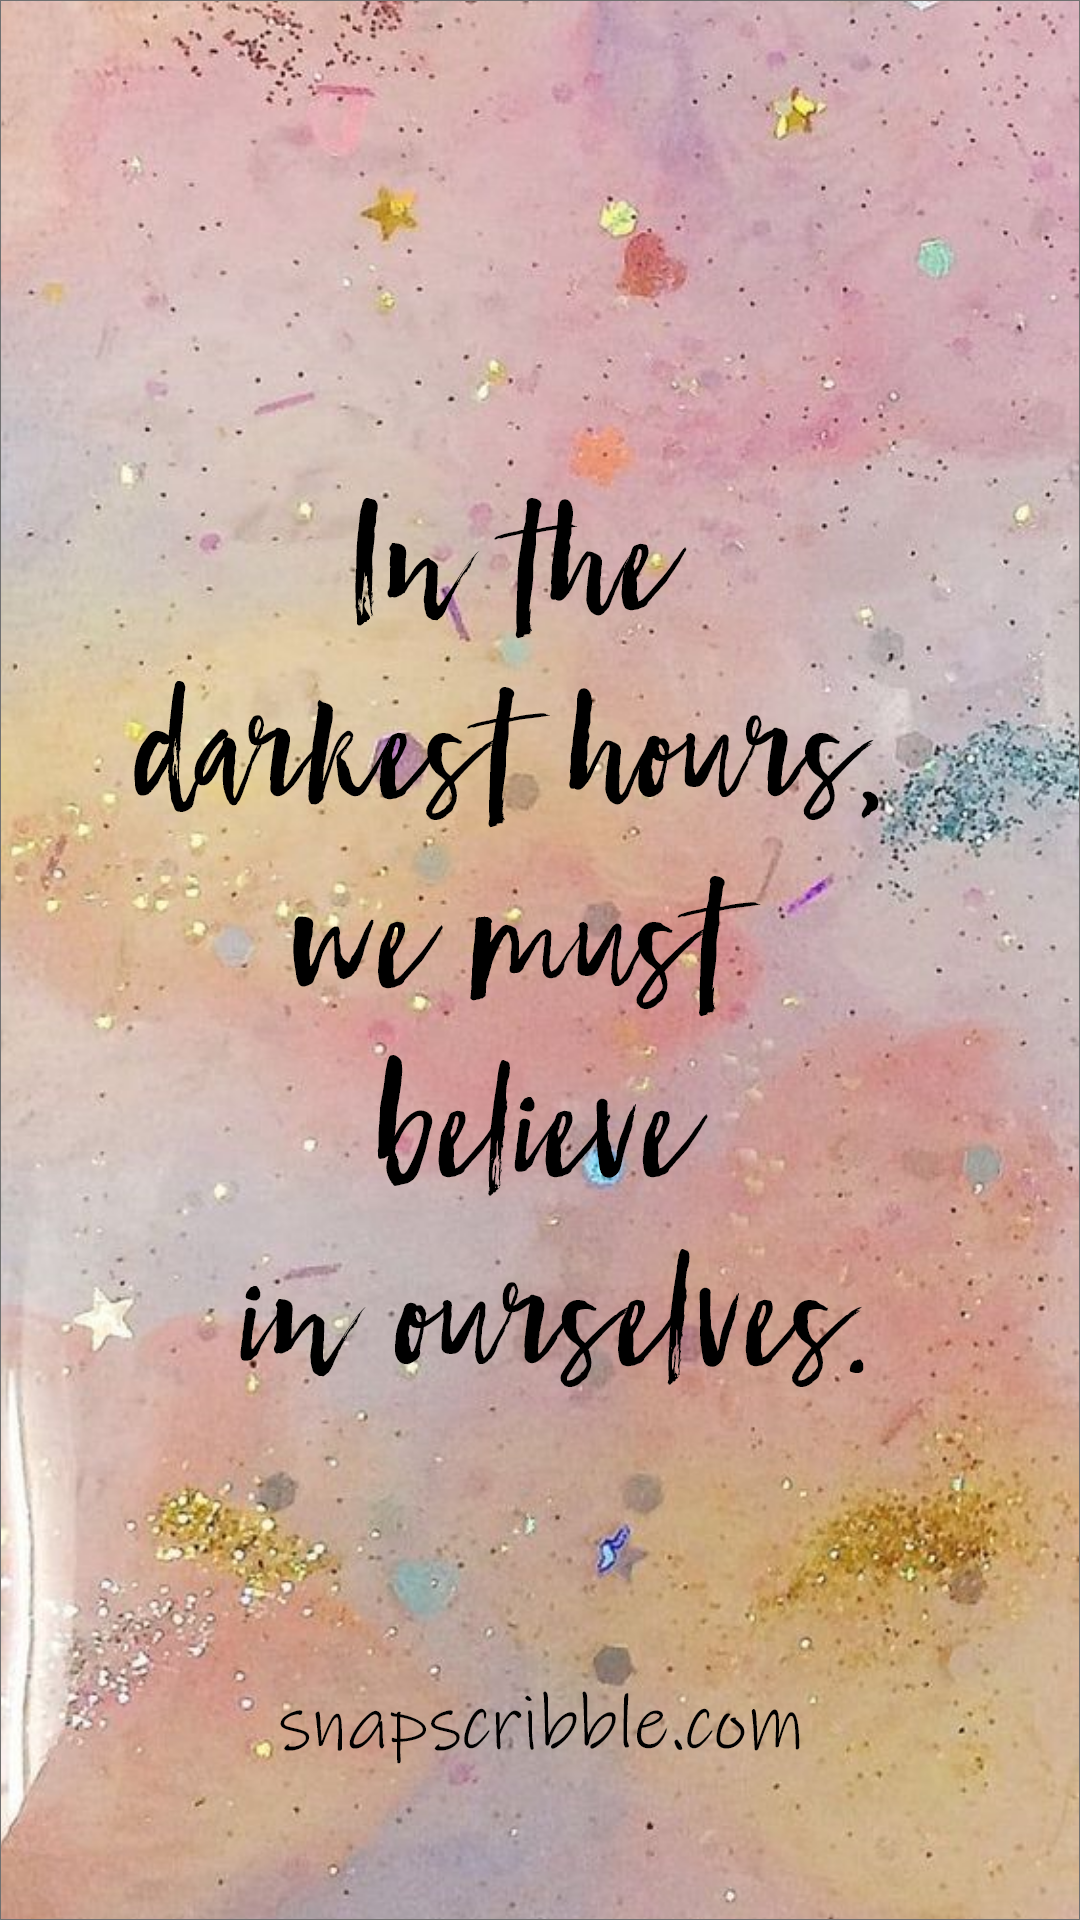 Self Confidence Quotes Self Awareness Quotes Sayings And Phone Wallpapers Self Awareness Quotes Self Confidence Quotes Self Quotes